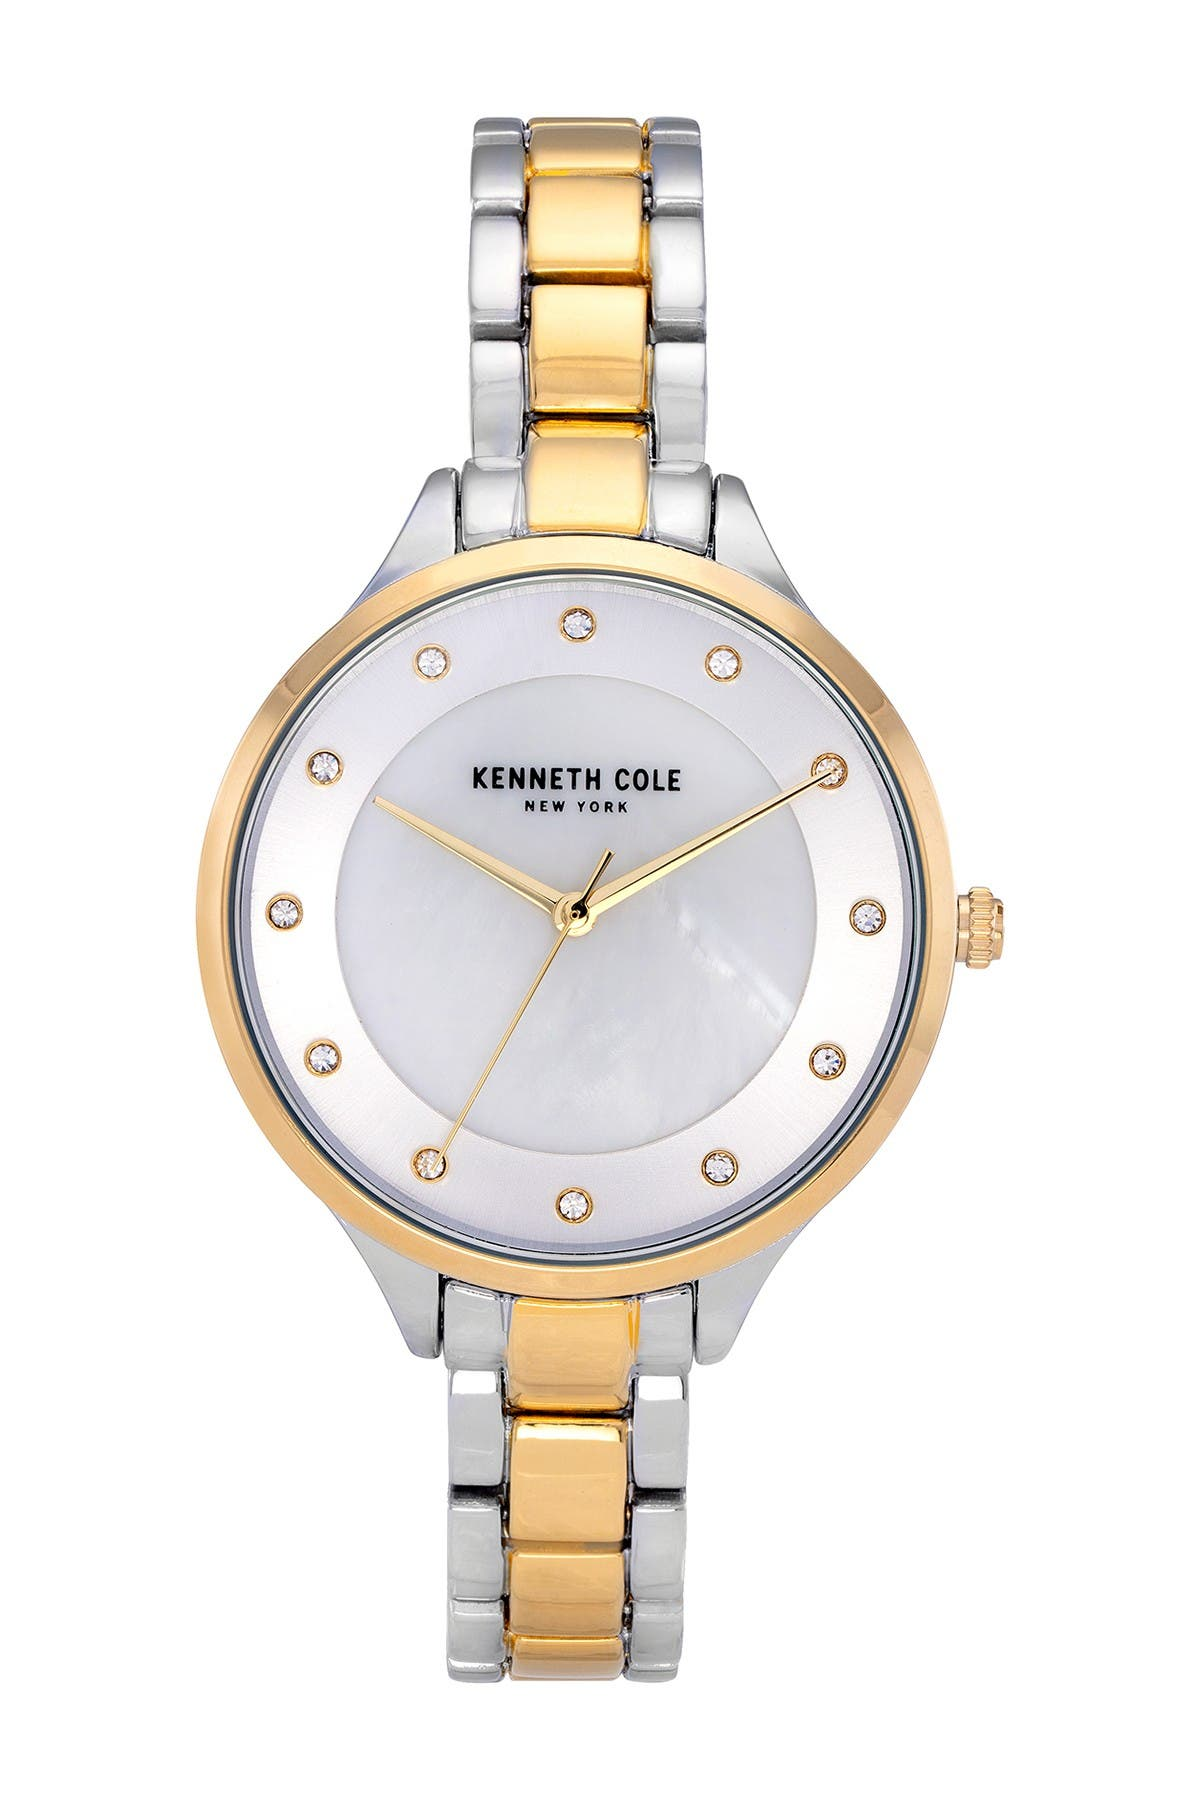 Image of Kenneth Cole New York Women's Classic Two Tone Watch, 36mm